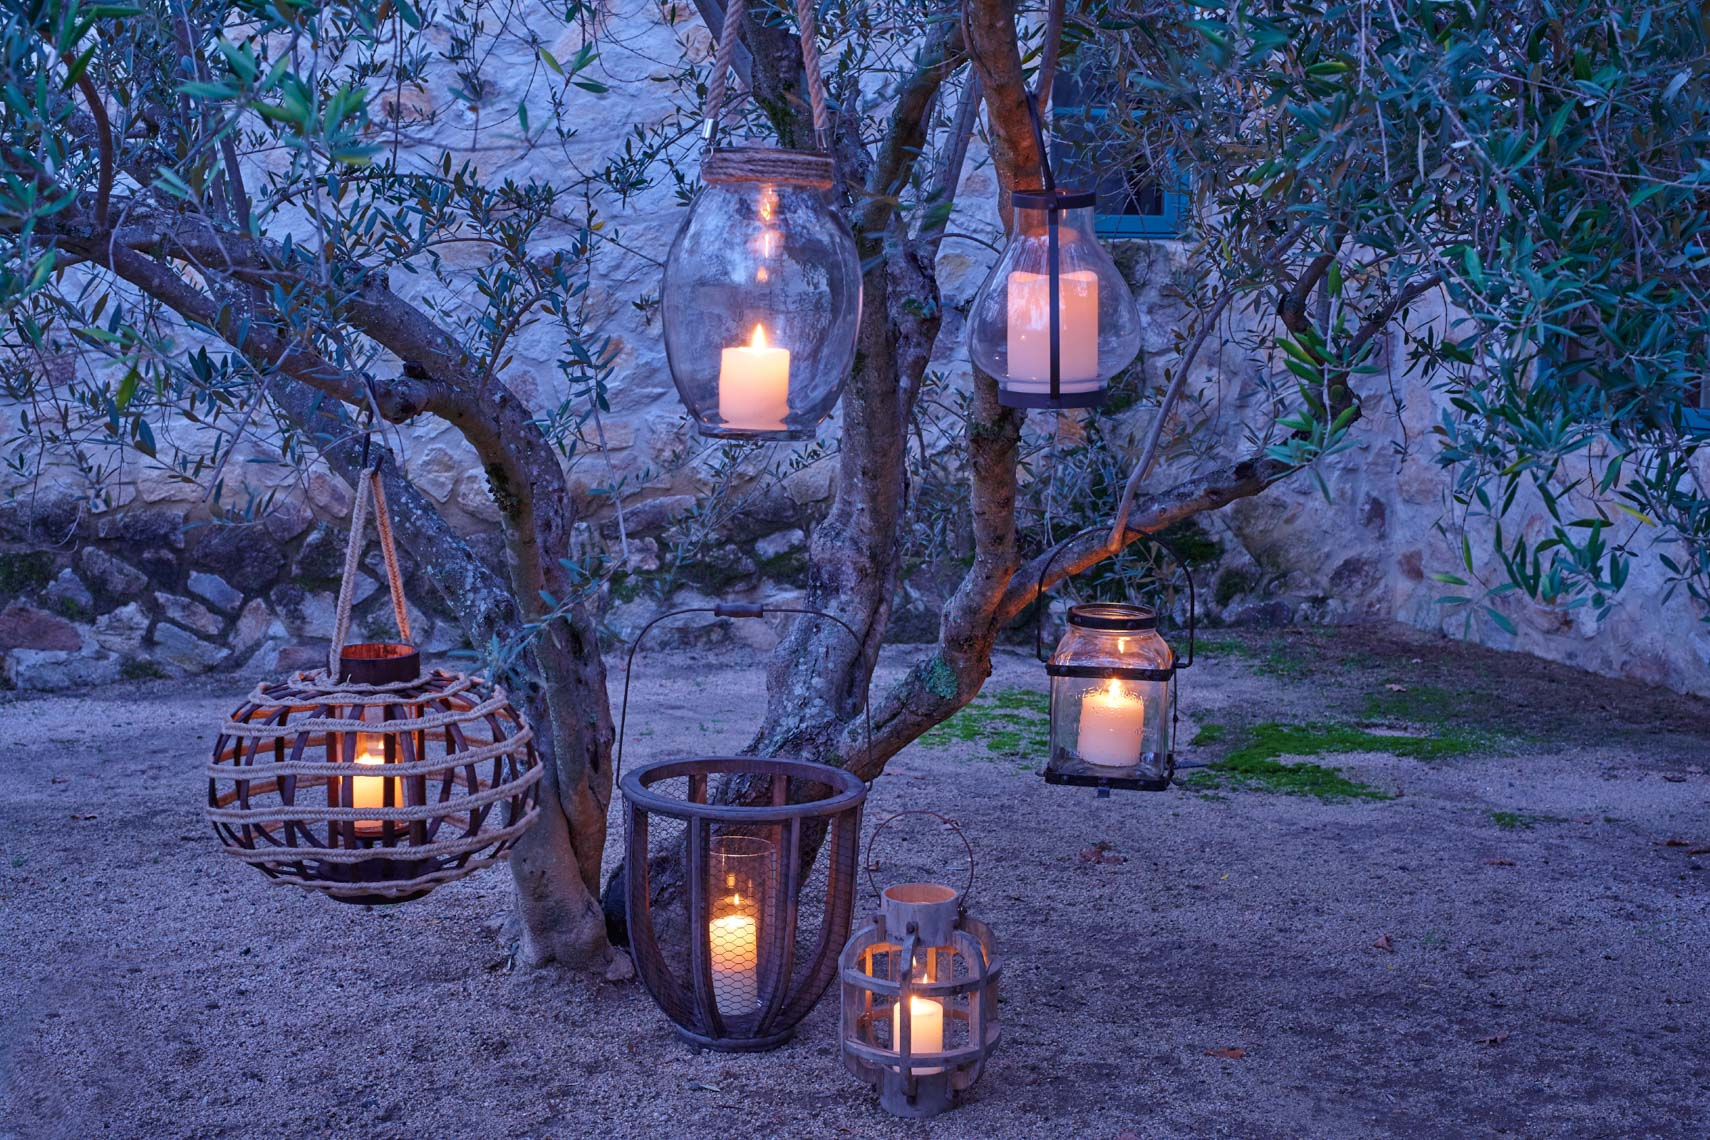 Collections of lit lanterns hanging from olive tree at dusk in Napa